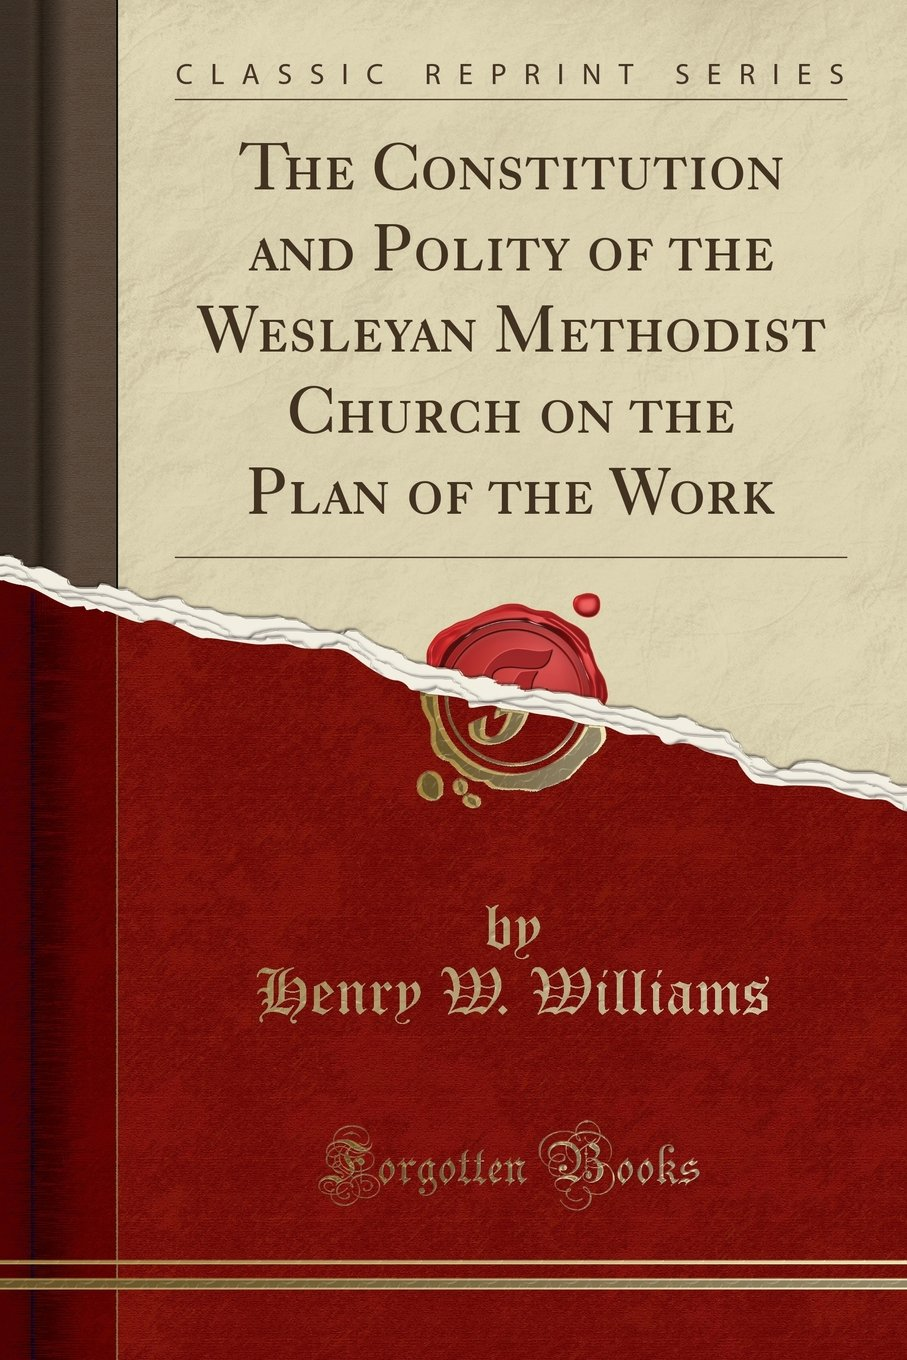 The Constitution and Polity of the Wesleyan Methodist Church on the Plan of the Work (Classic Reprint) pdf